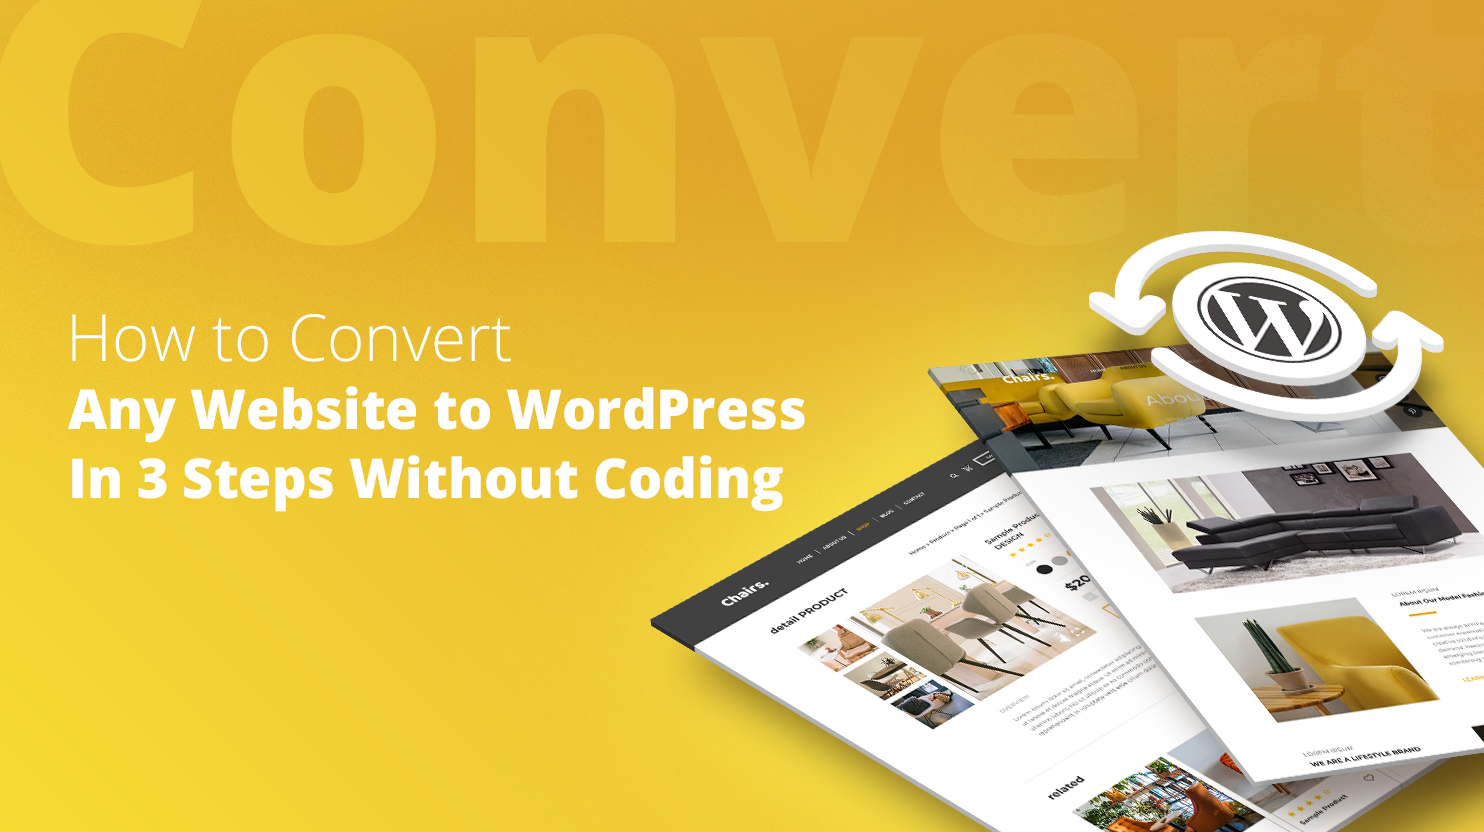 WordPress pages and WP logo on a yellow background